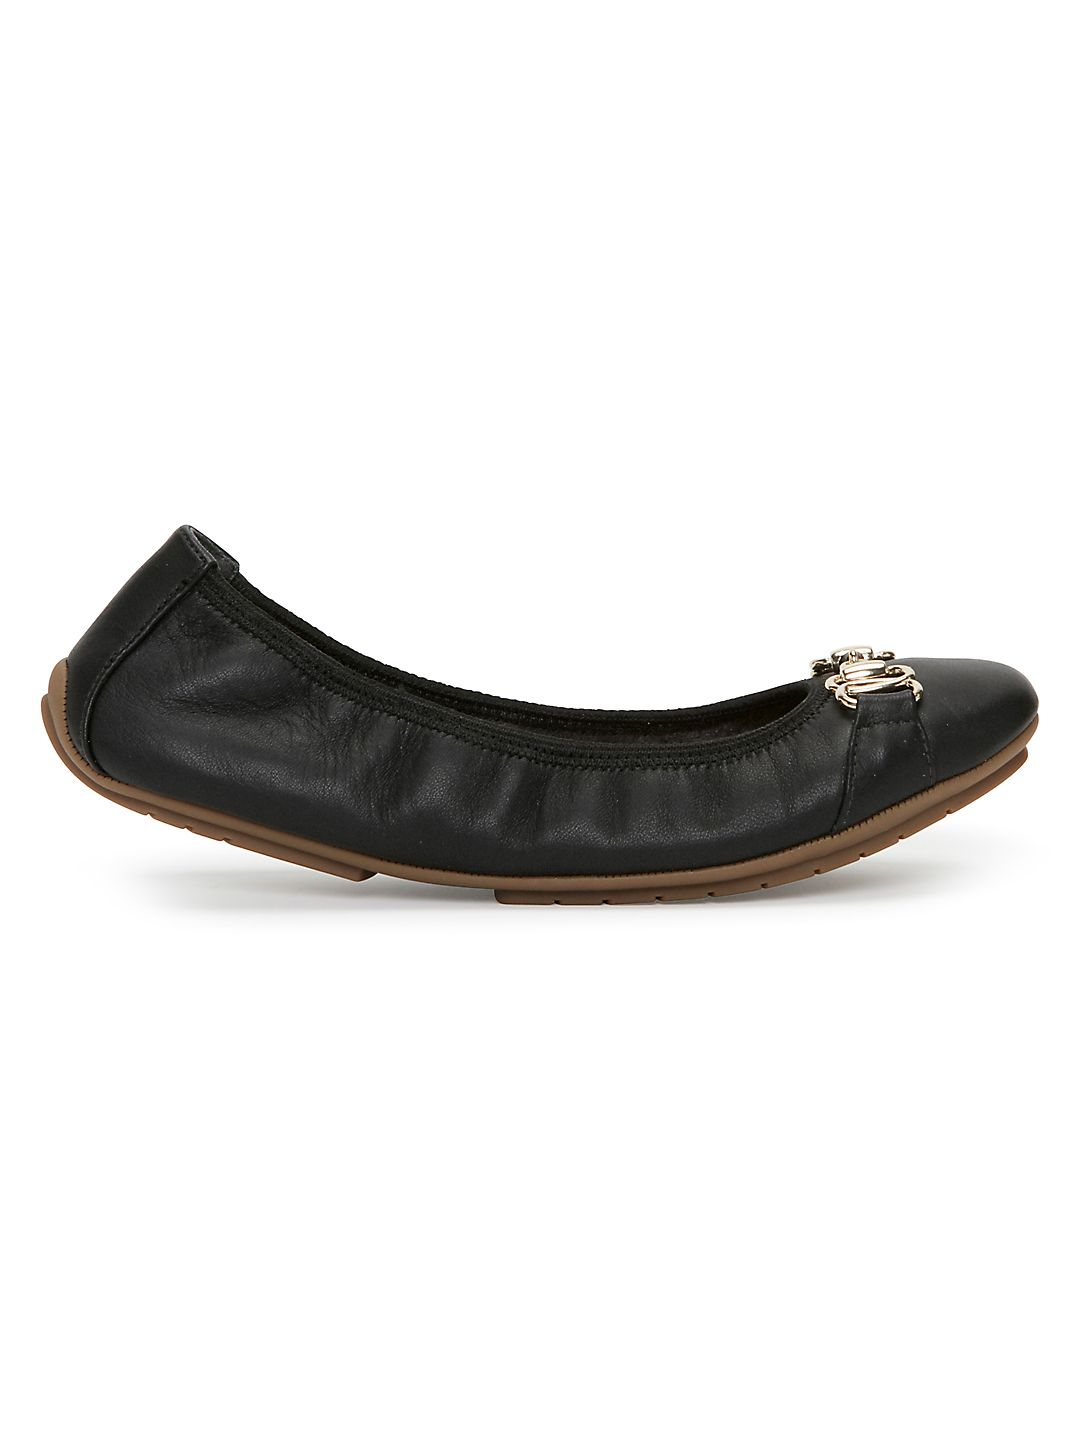 Olympia Leather Ballet Flats